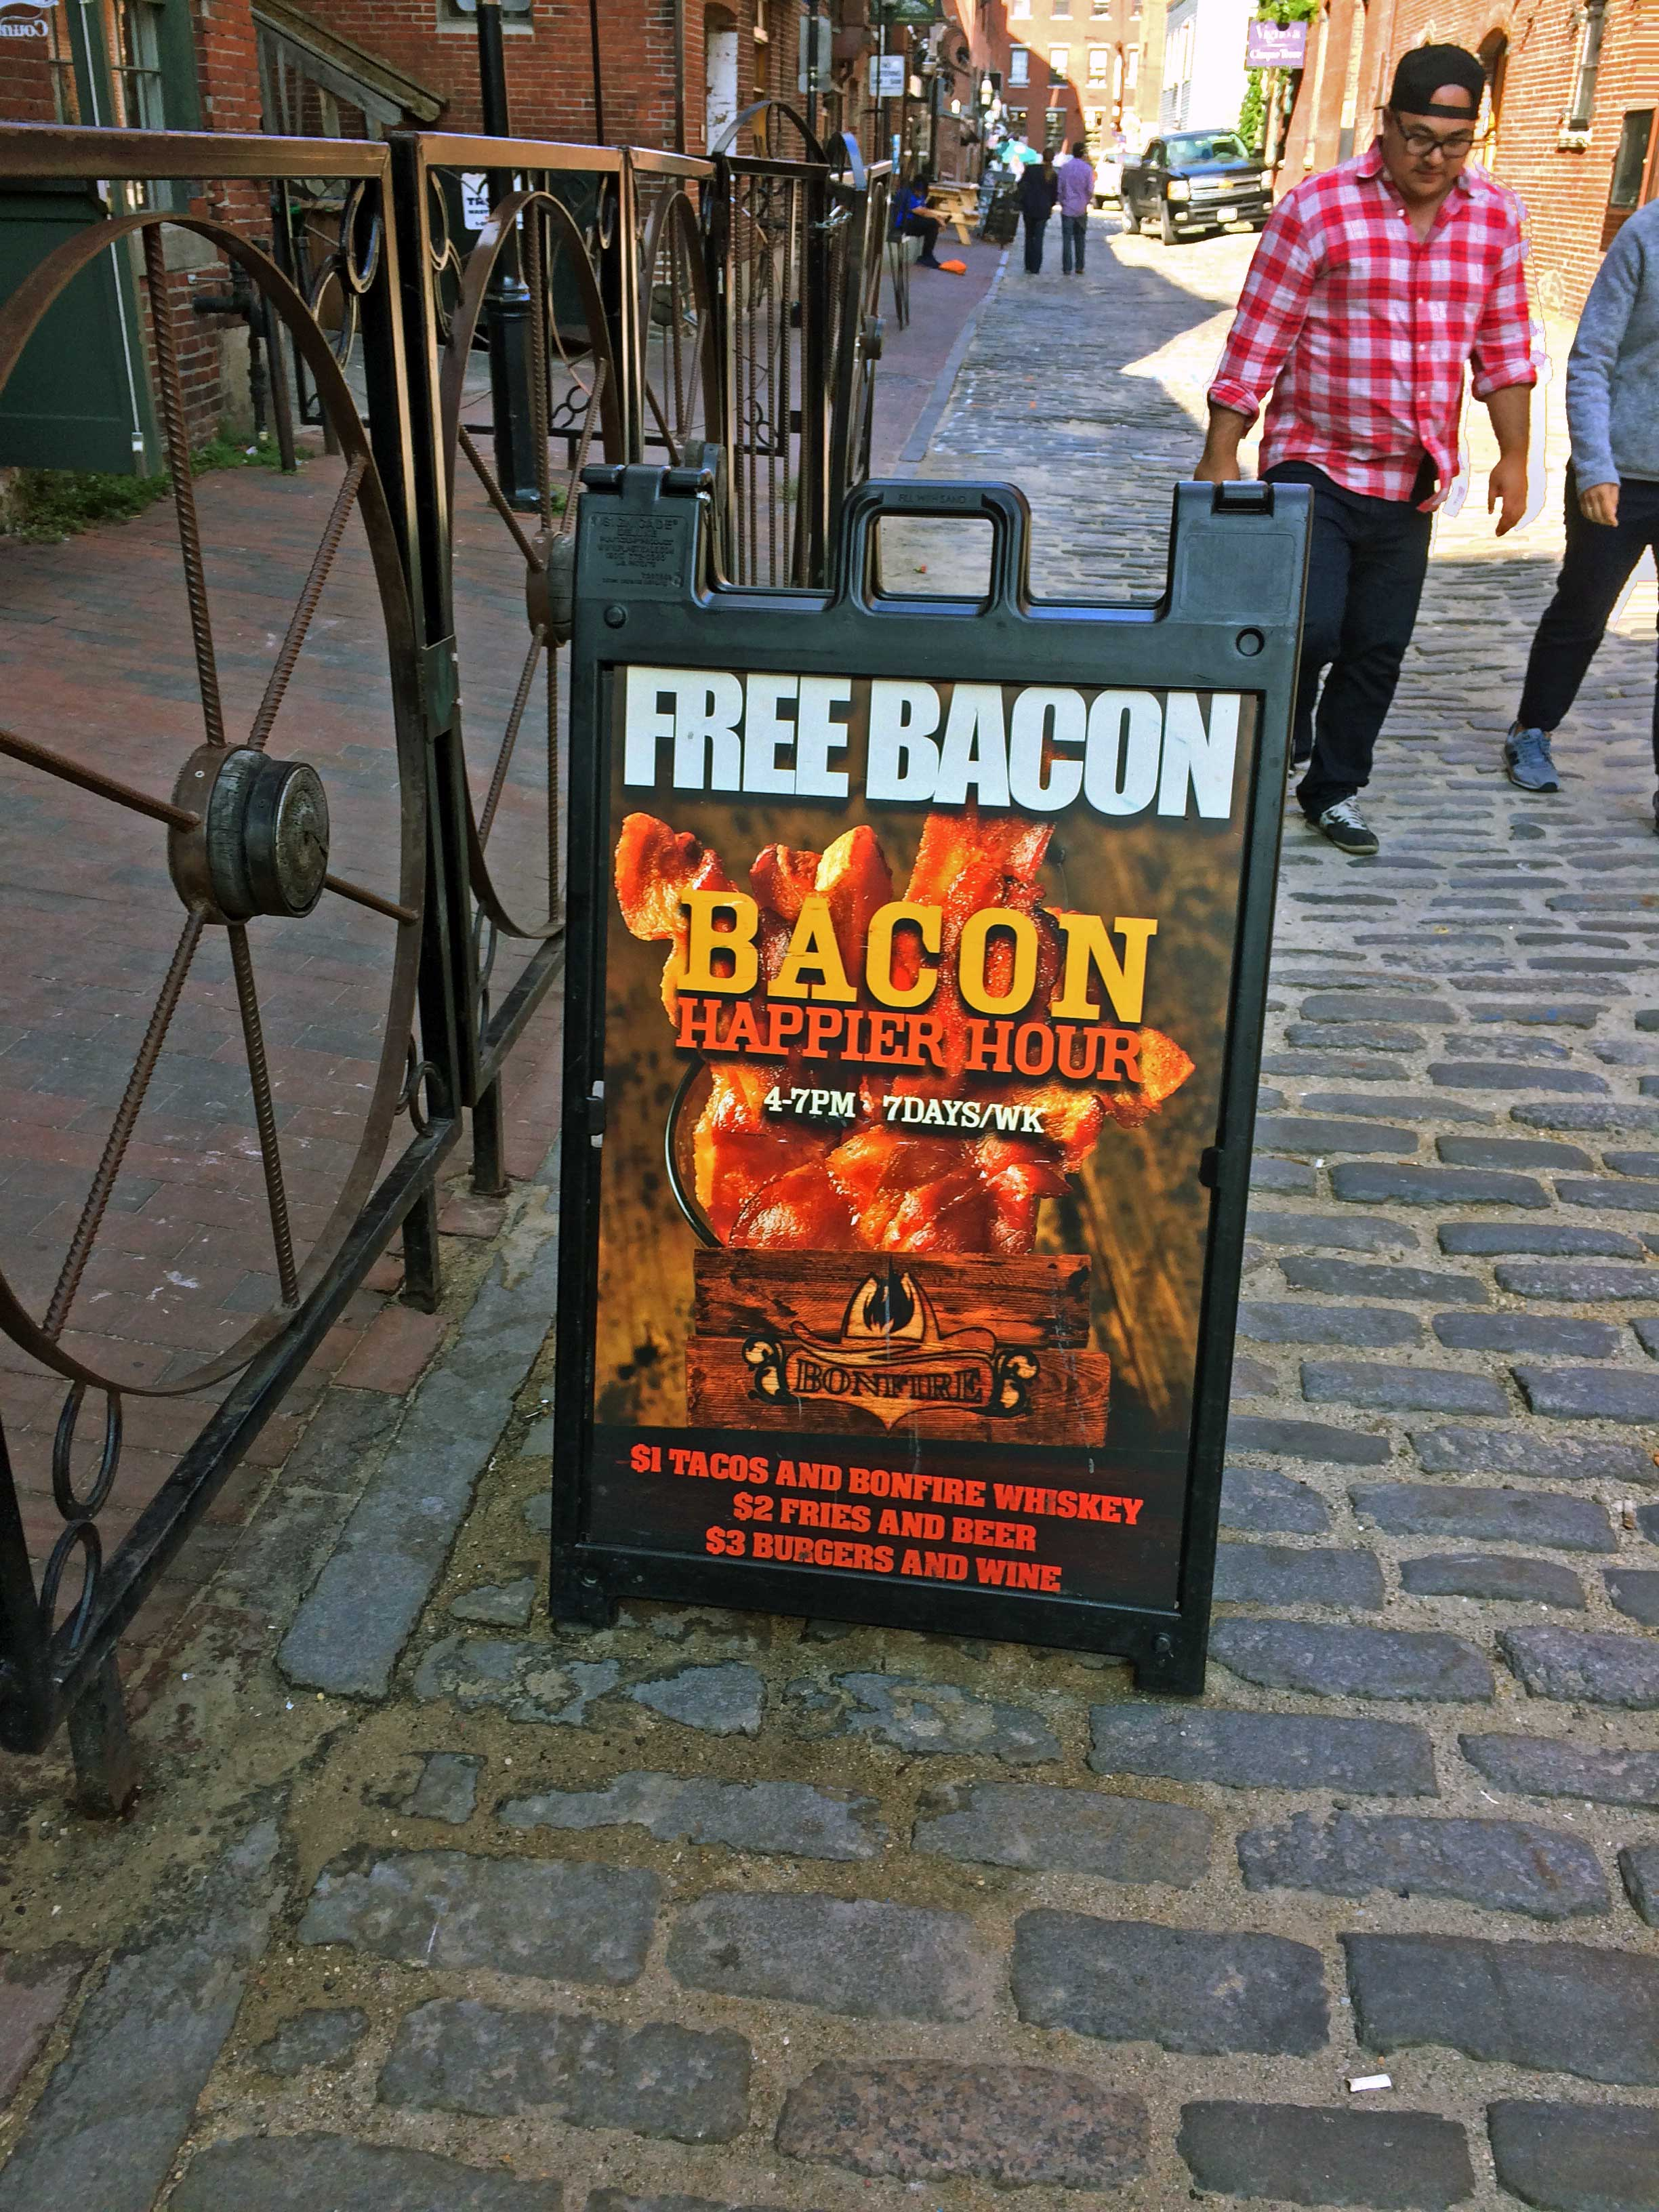 Can't get any happier than a Bacon Happy Hour! - Portland, Maine